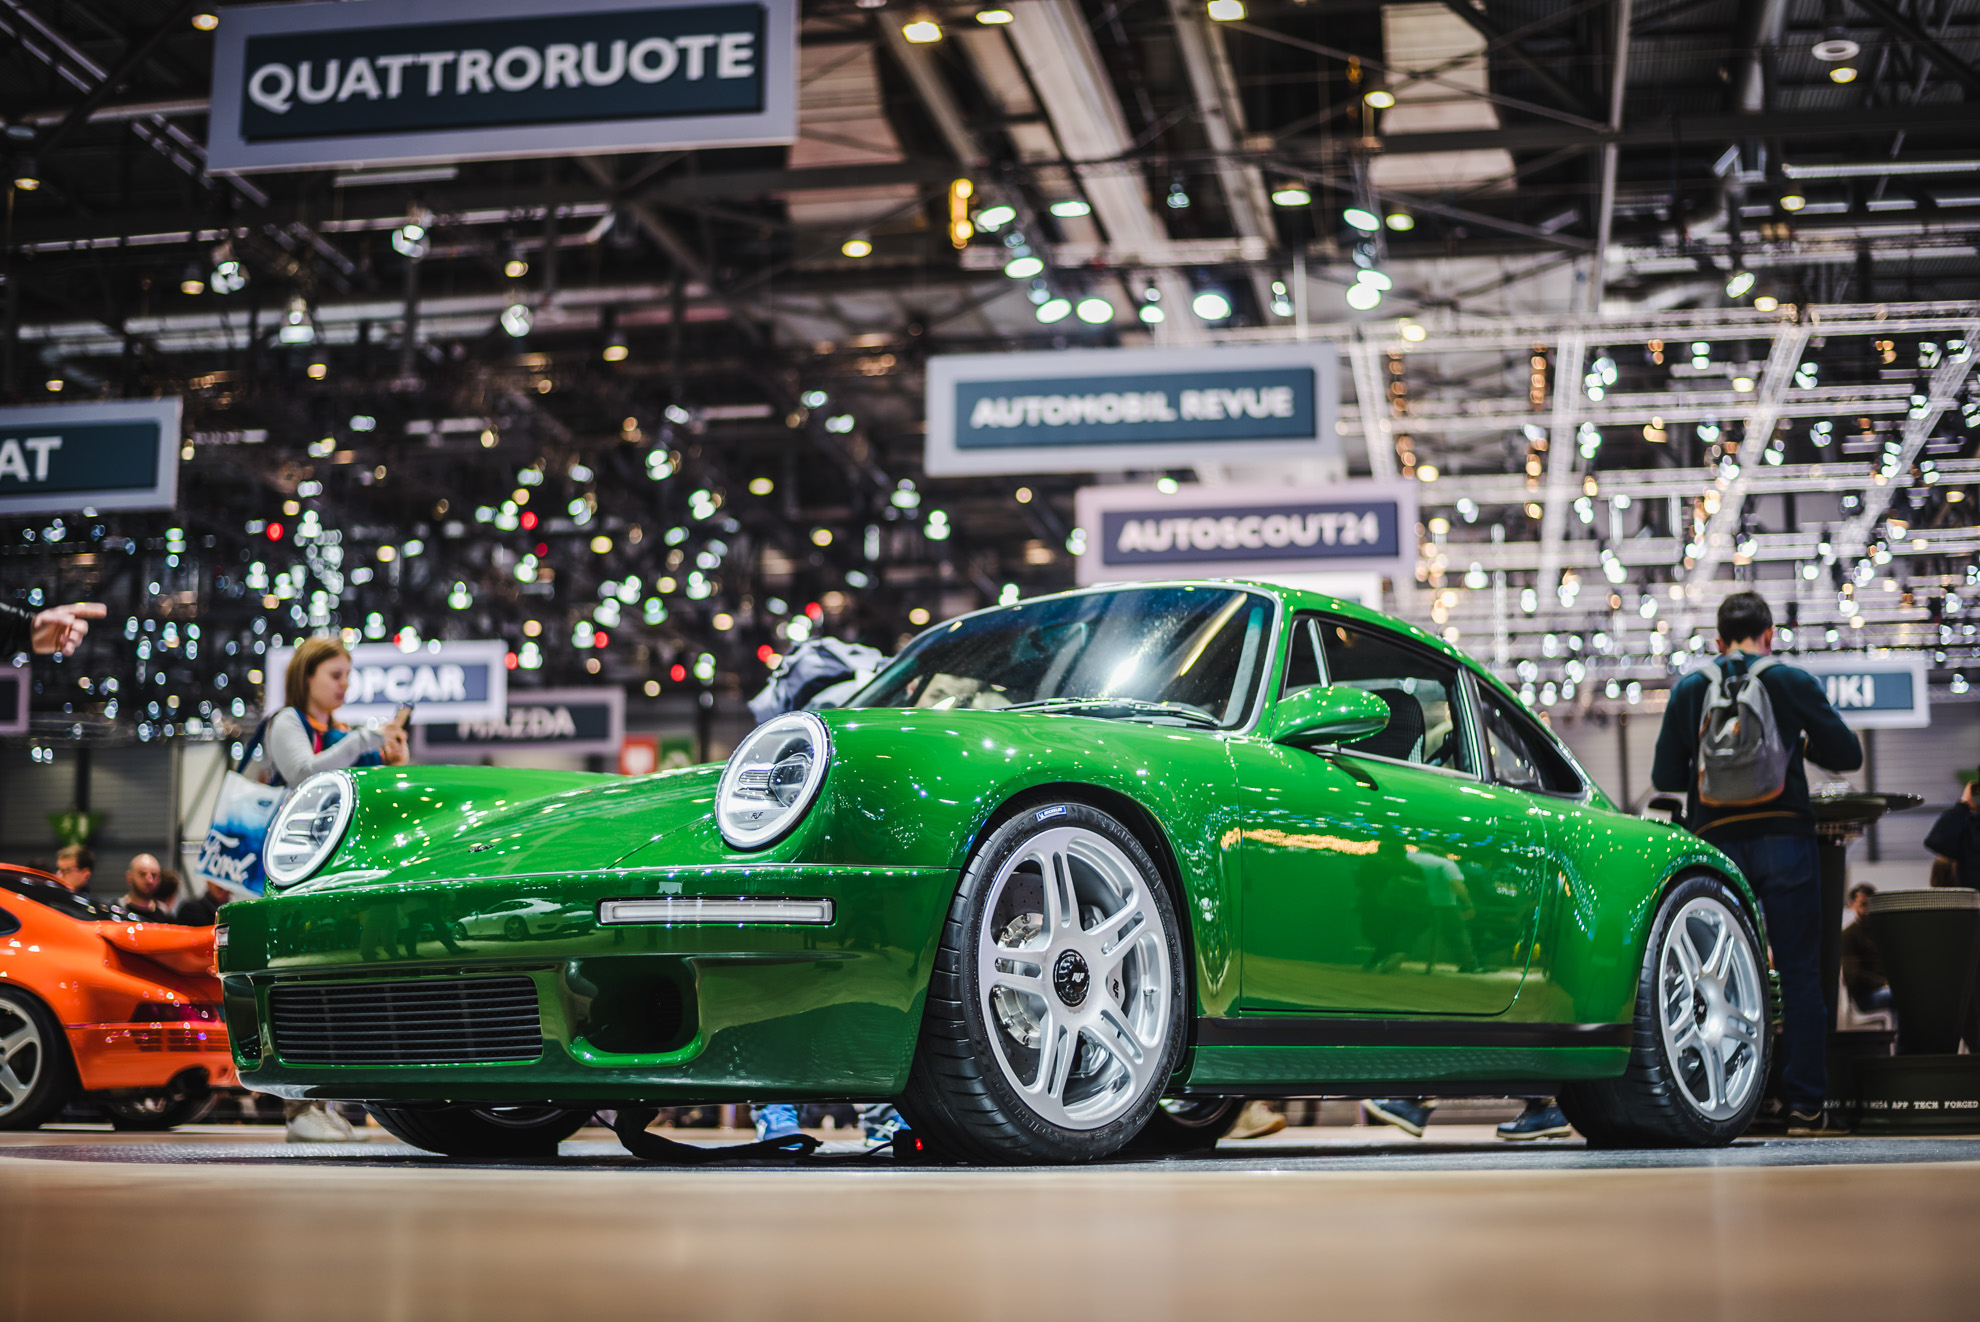 geneva-international-motor-show-igors-sinitsins-32